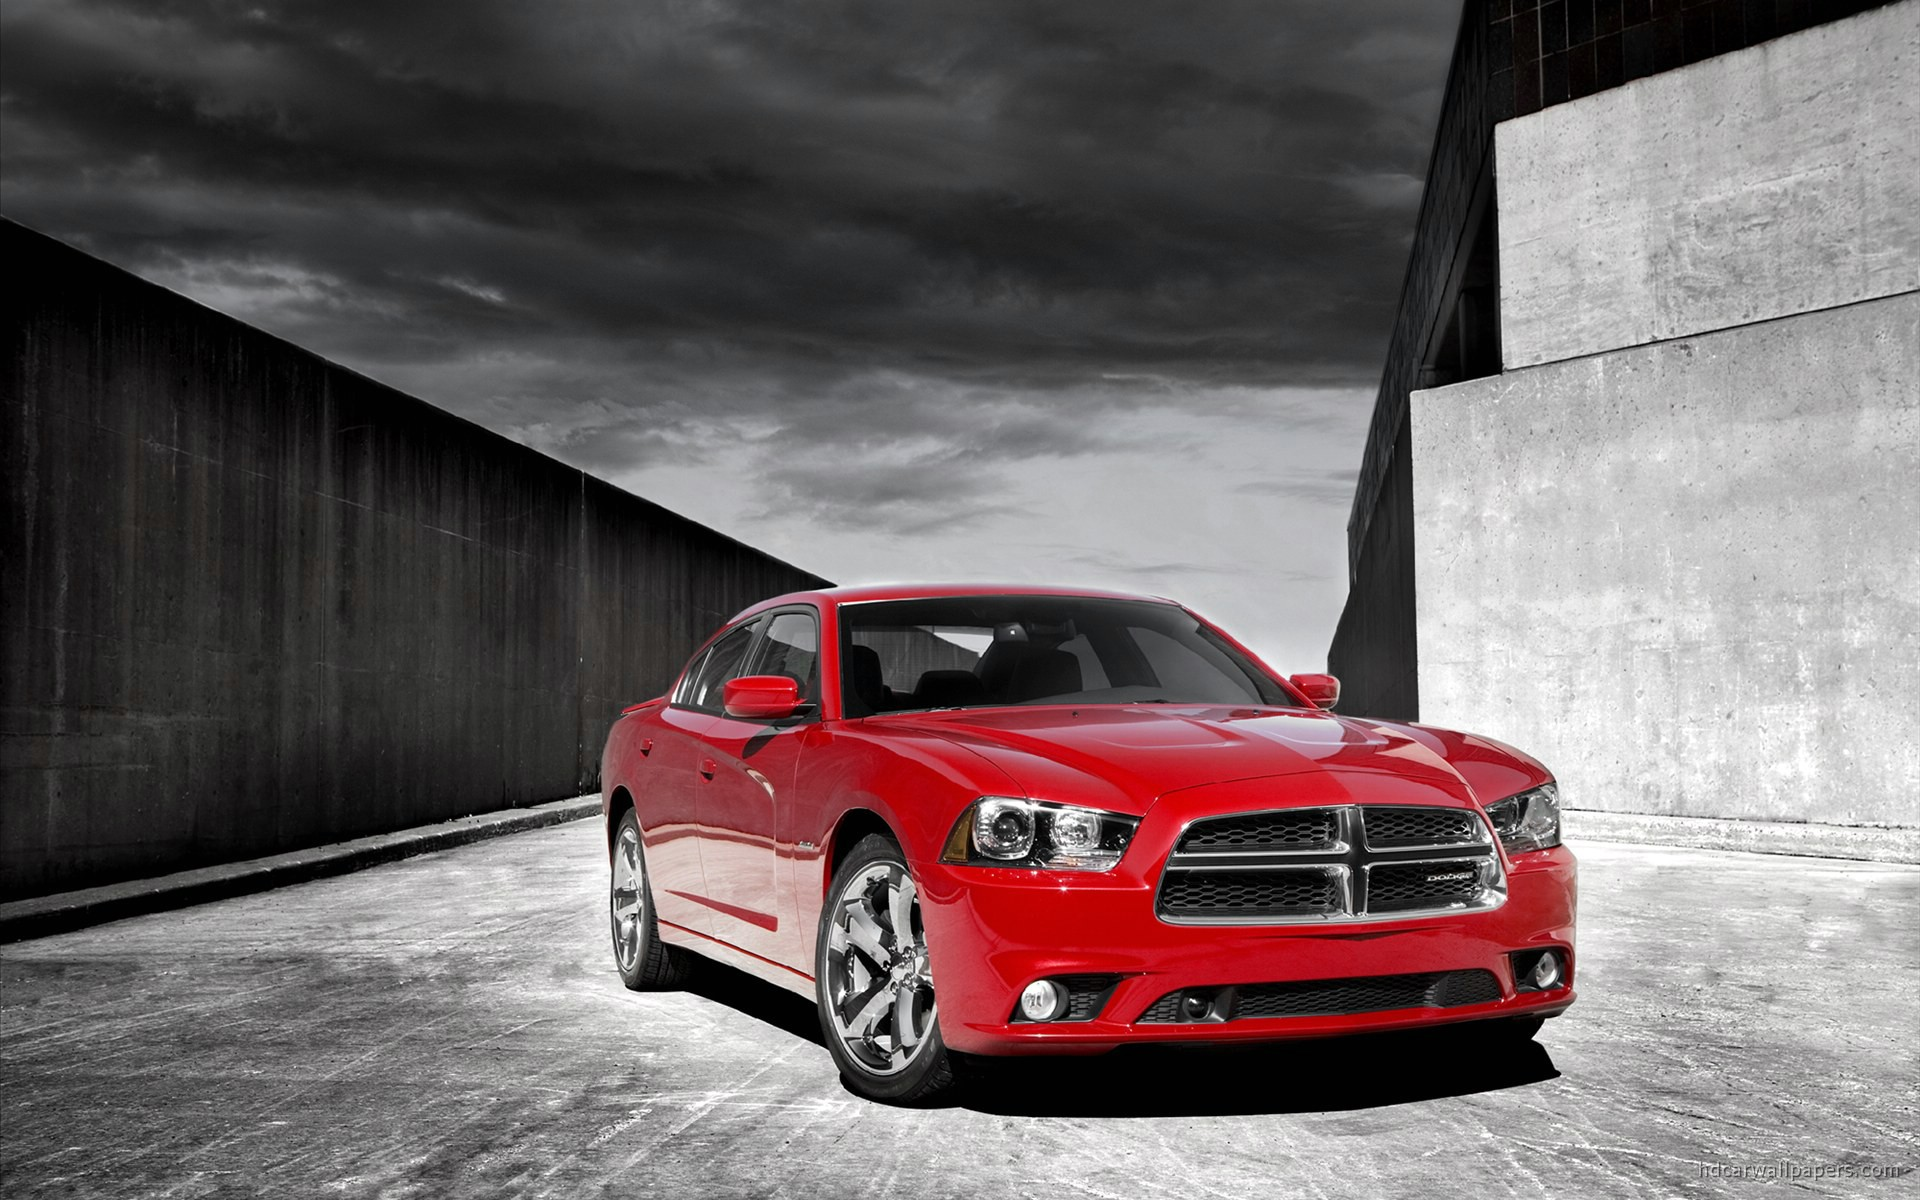 2011 Dodge Charger Wallpaper Hd Car Wallpapers Id 1687